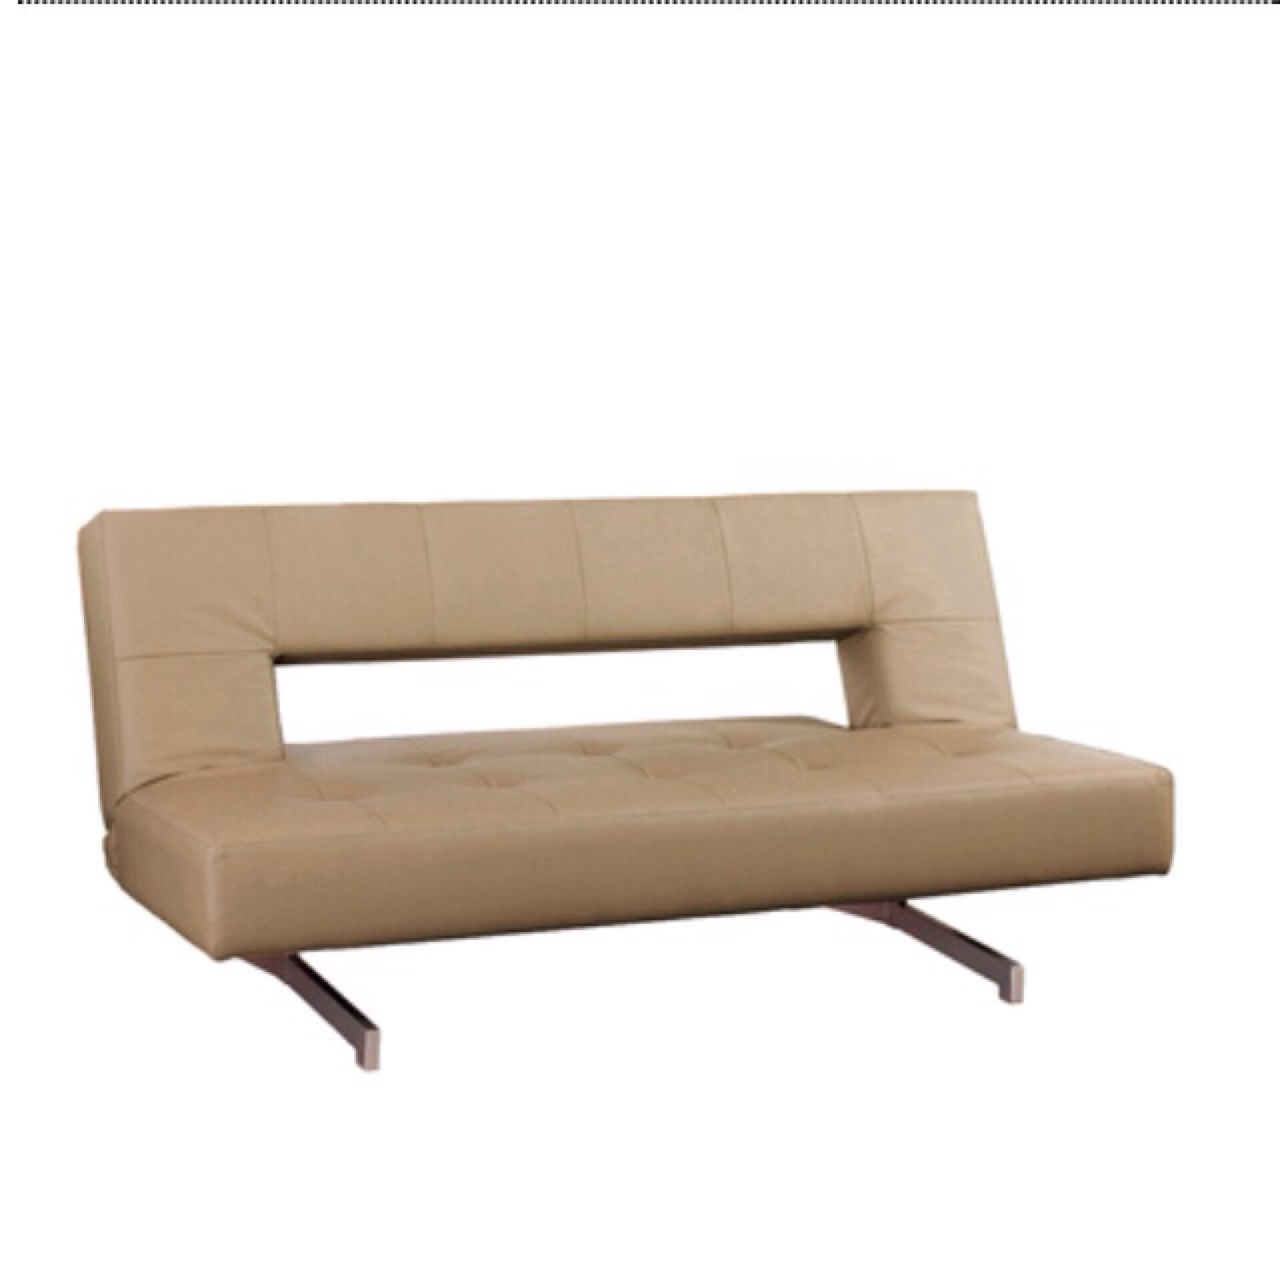 Terrific For Sale A Great Dwell Pisa Sofa Bed In Tan Faux Depop Gmtry Best Dining Table And Chair Ideas Images Gmtryco